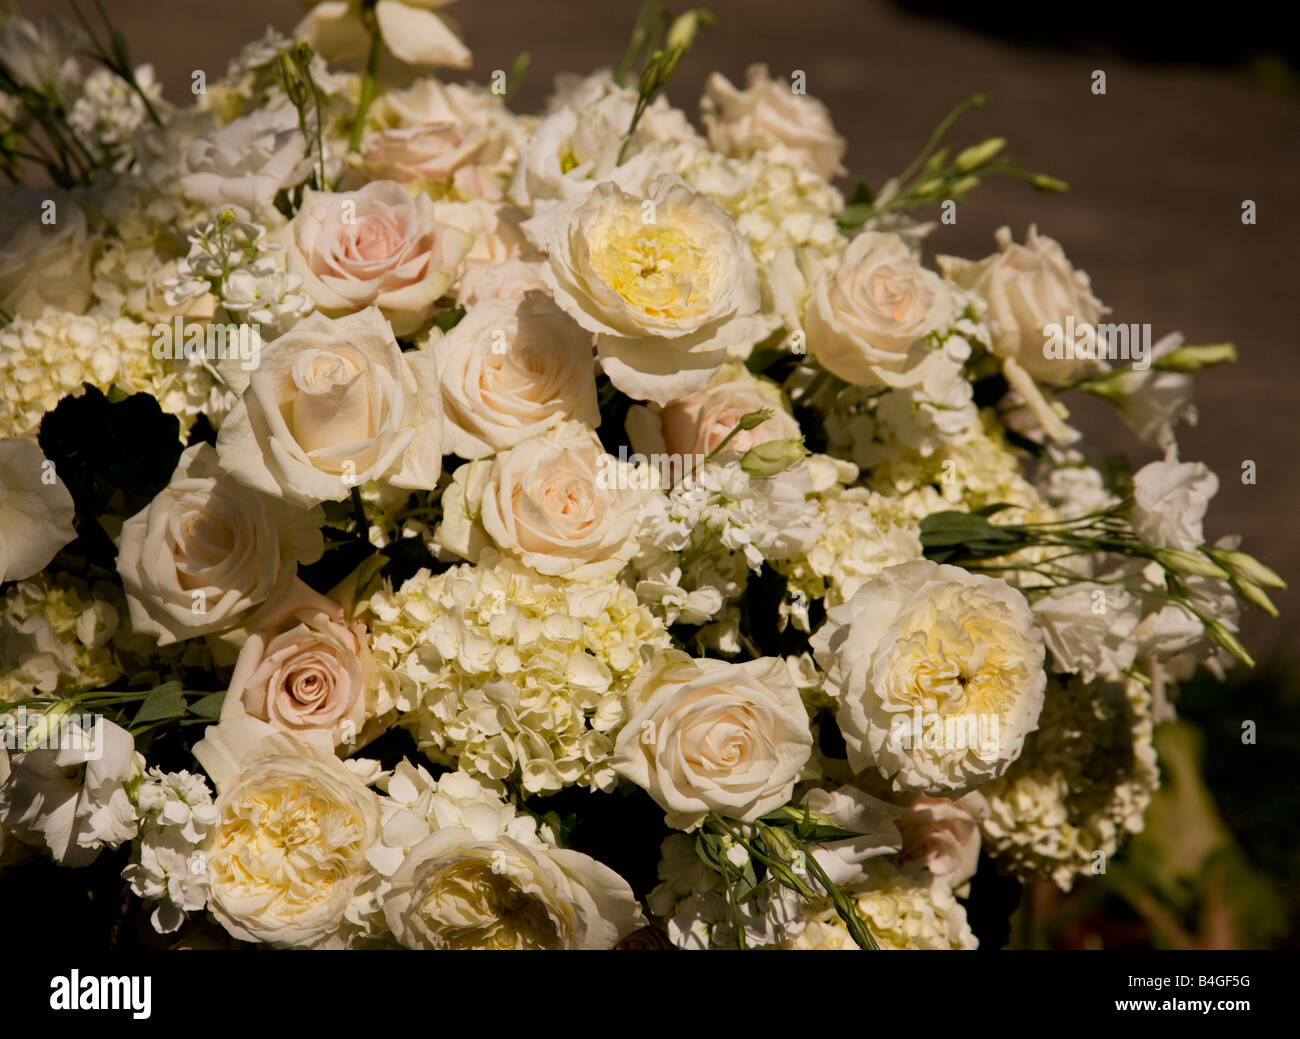 Light pink roses and white hydrangeas rest in a marble fount at Brookgreen Gardens in South Carolina, USA. - Stock Image